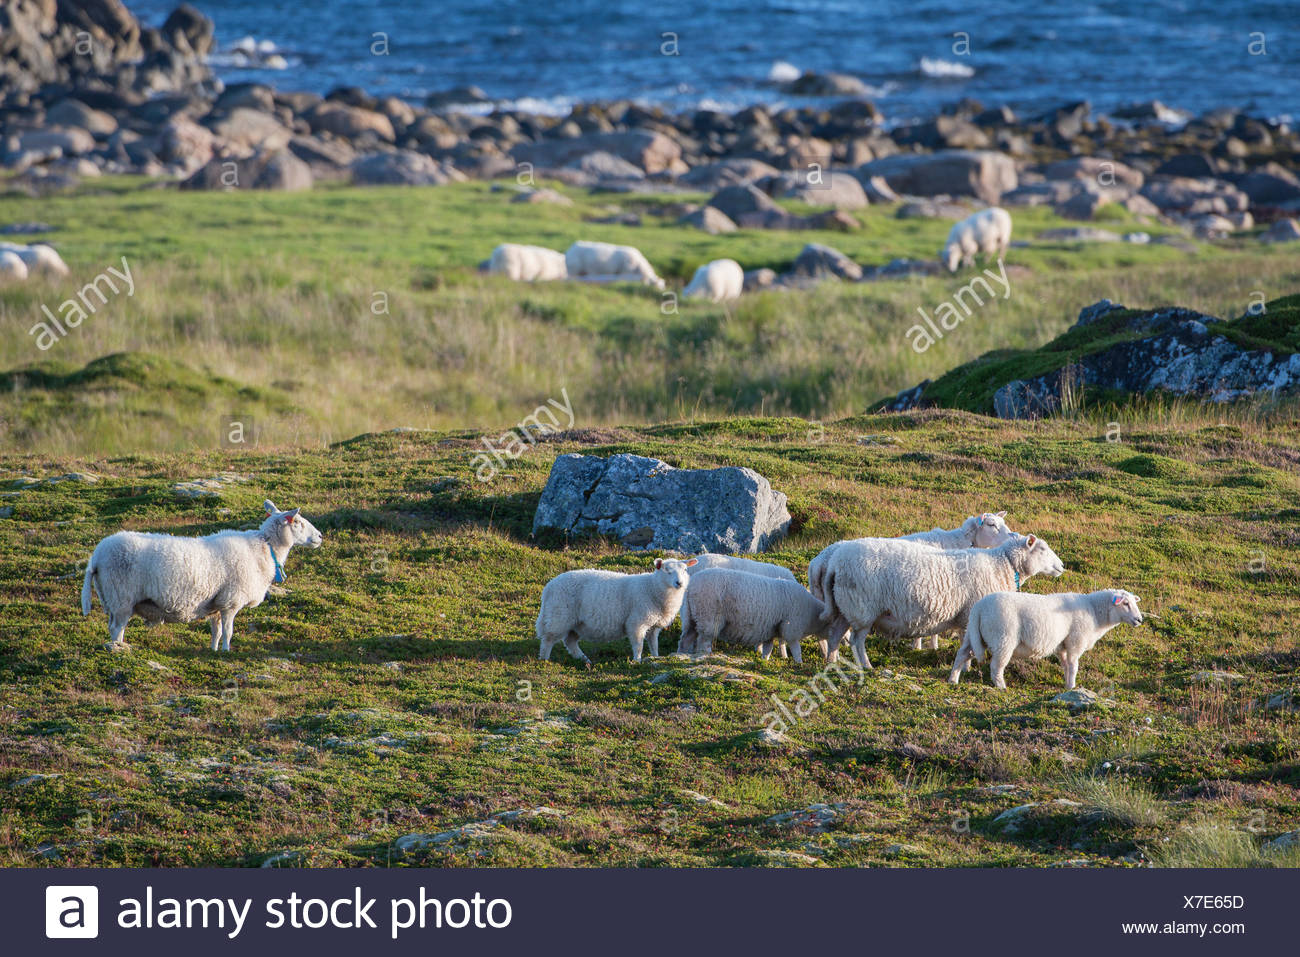 Sheep grazing by the sea, Insel Andøya, Vesterålen, Nordland, Northern Norway, Norway - Stock Image